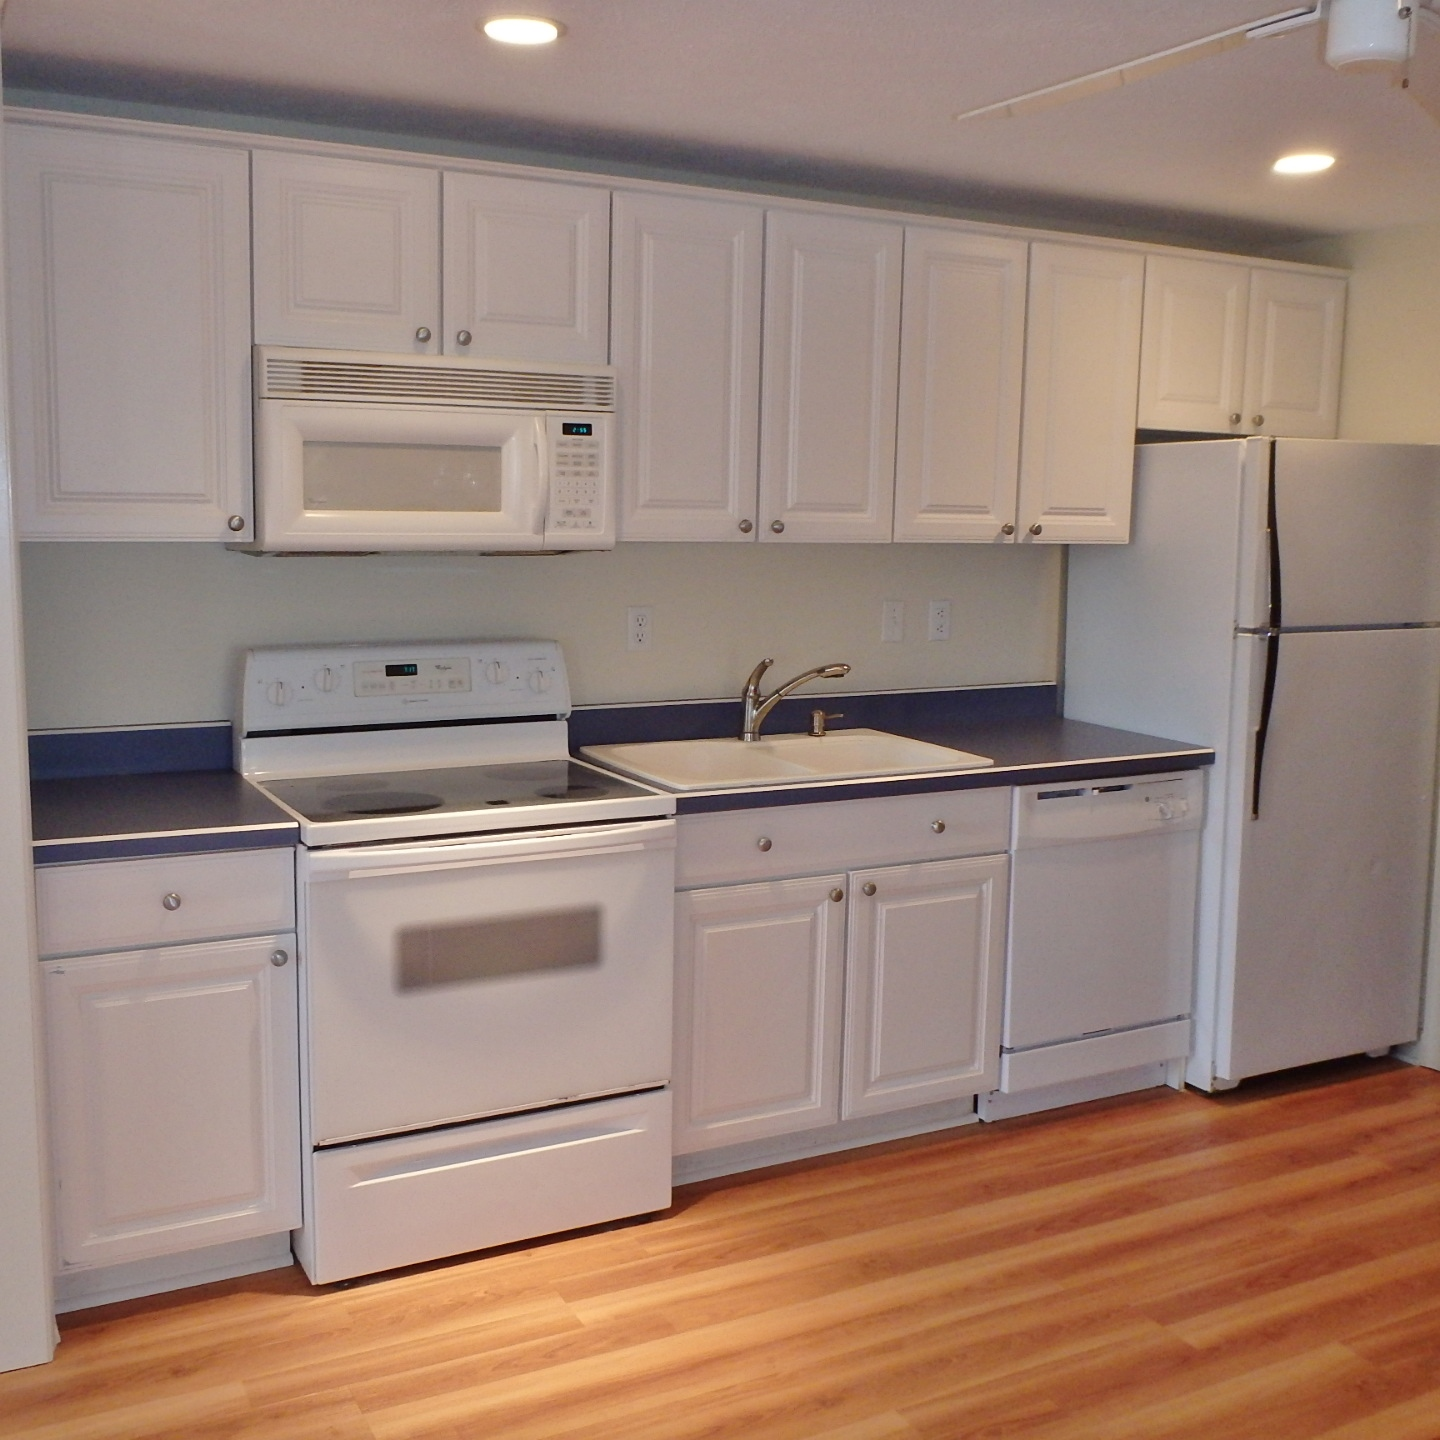 Second Kitchen photo at 560 Balmoral Circle, State College PA.